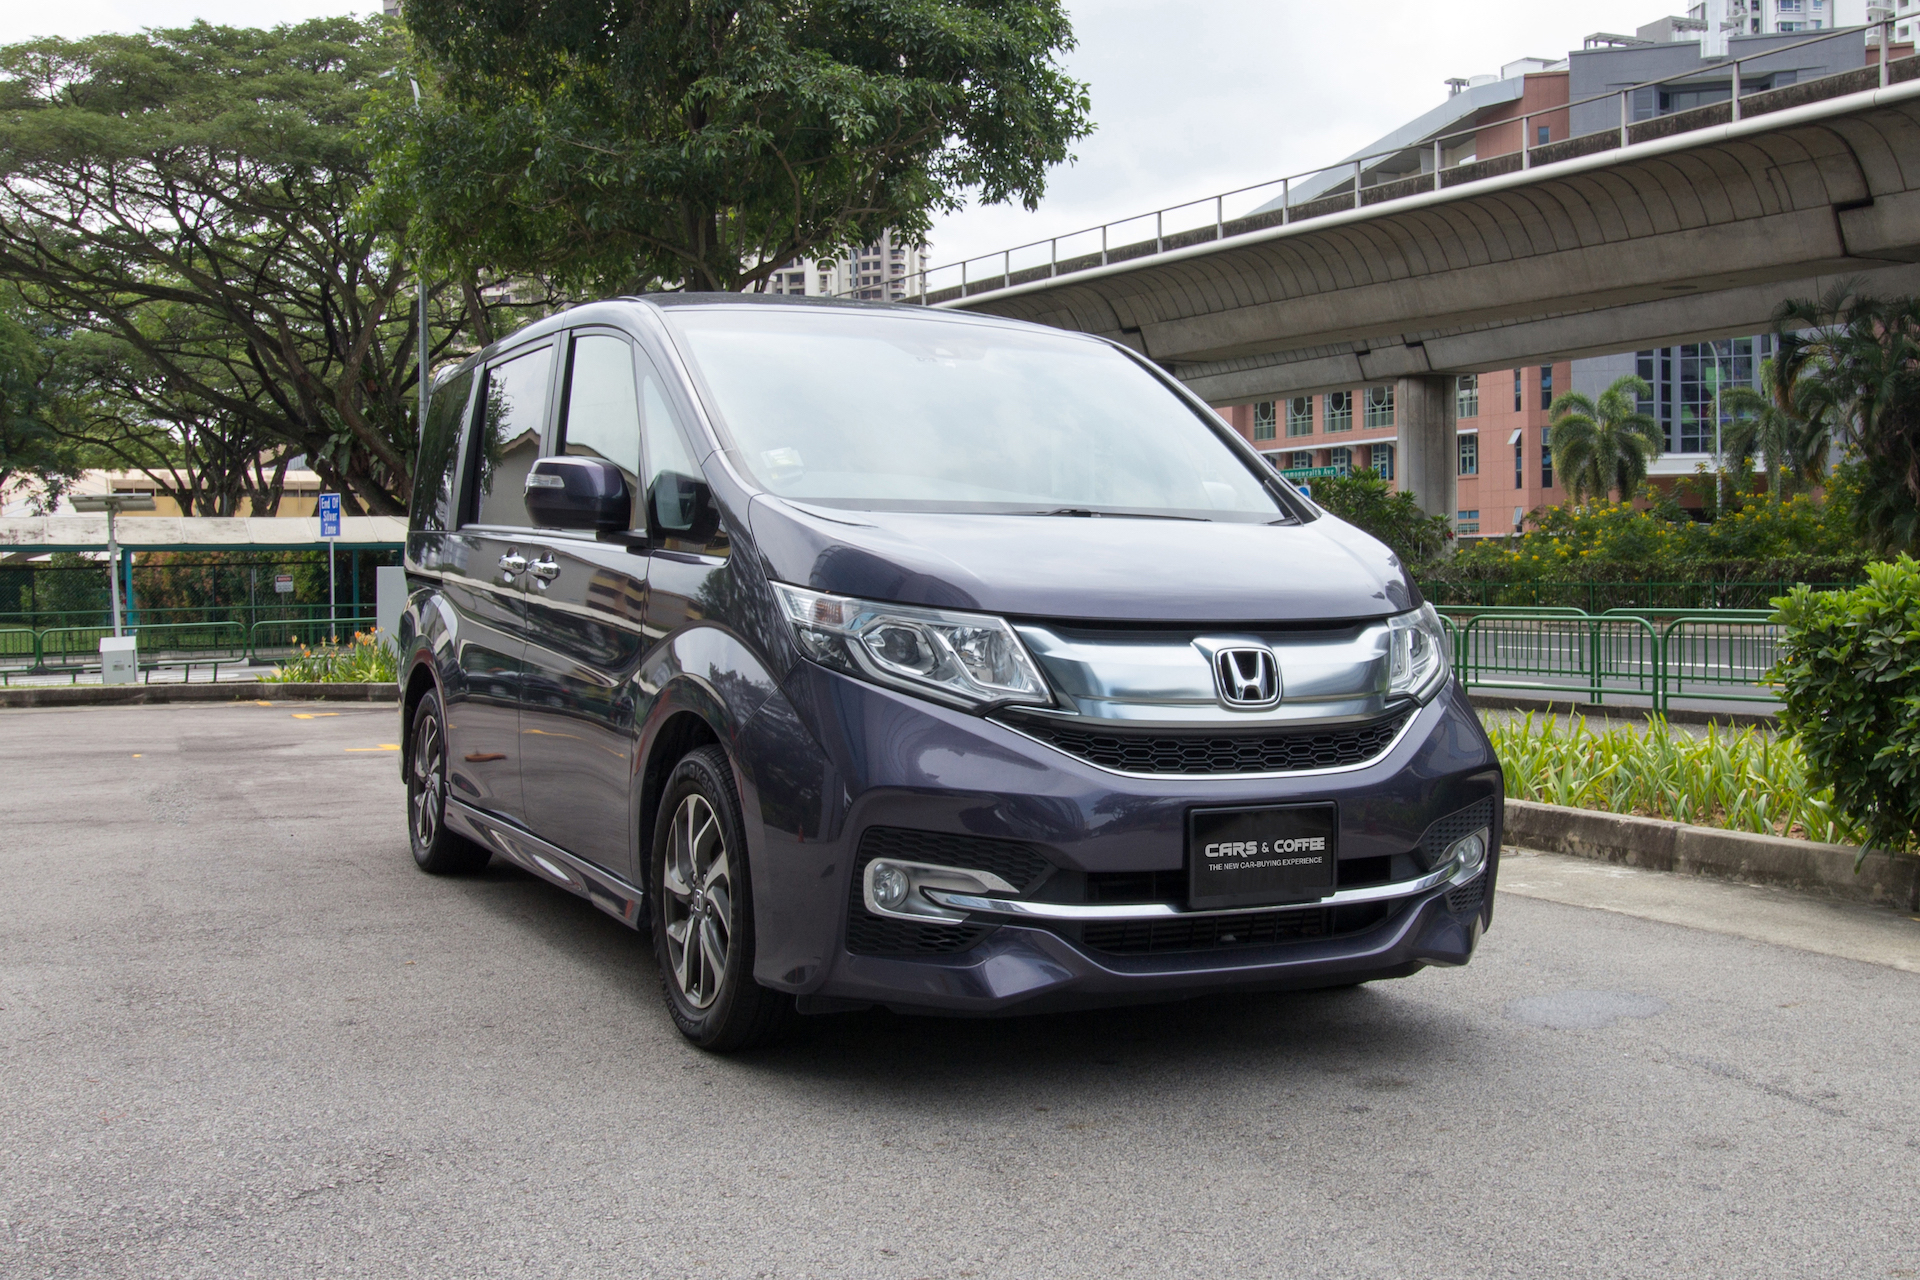 Certified Pre-Owned Honda Stepwagon 1.5A Spada | Cars and Coffee Singapore